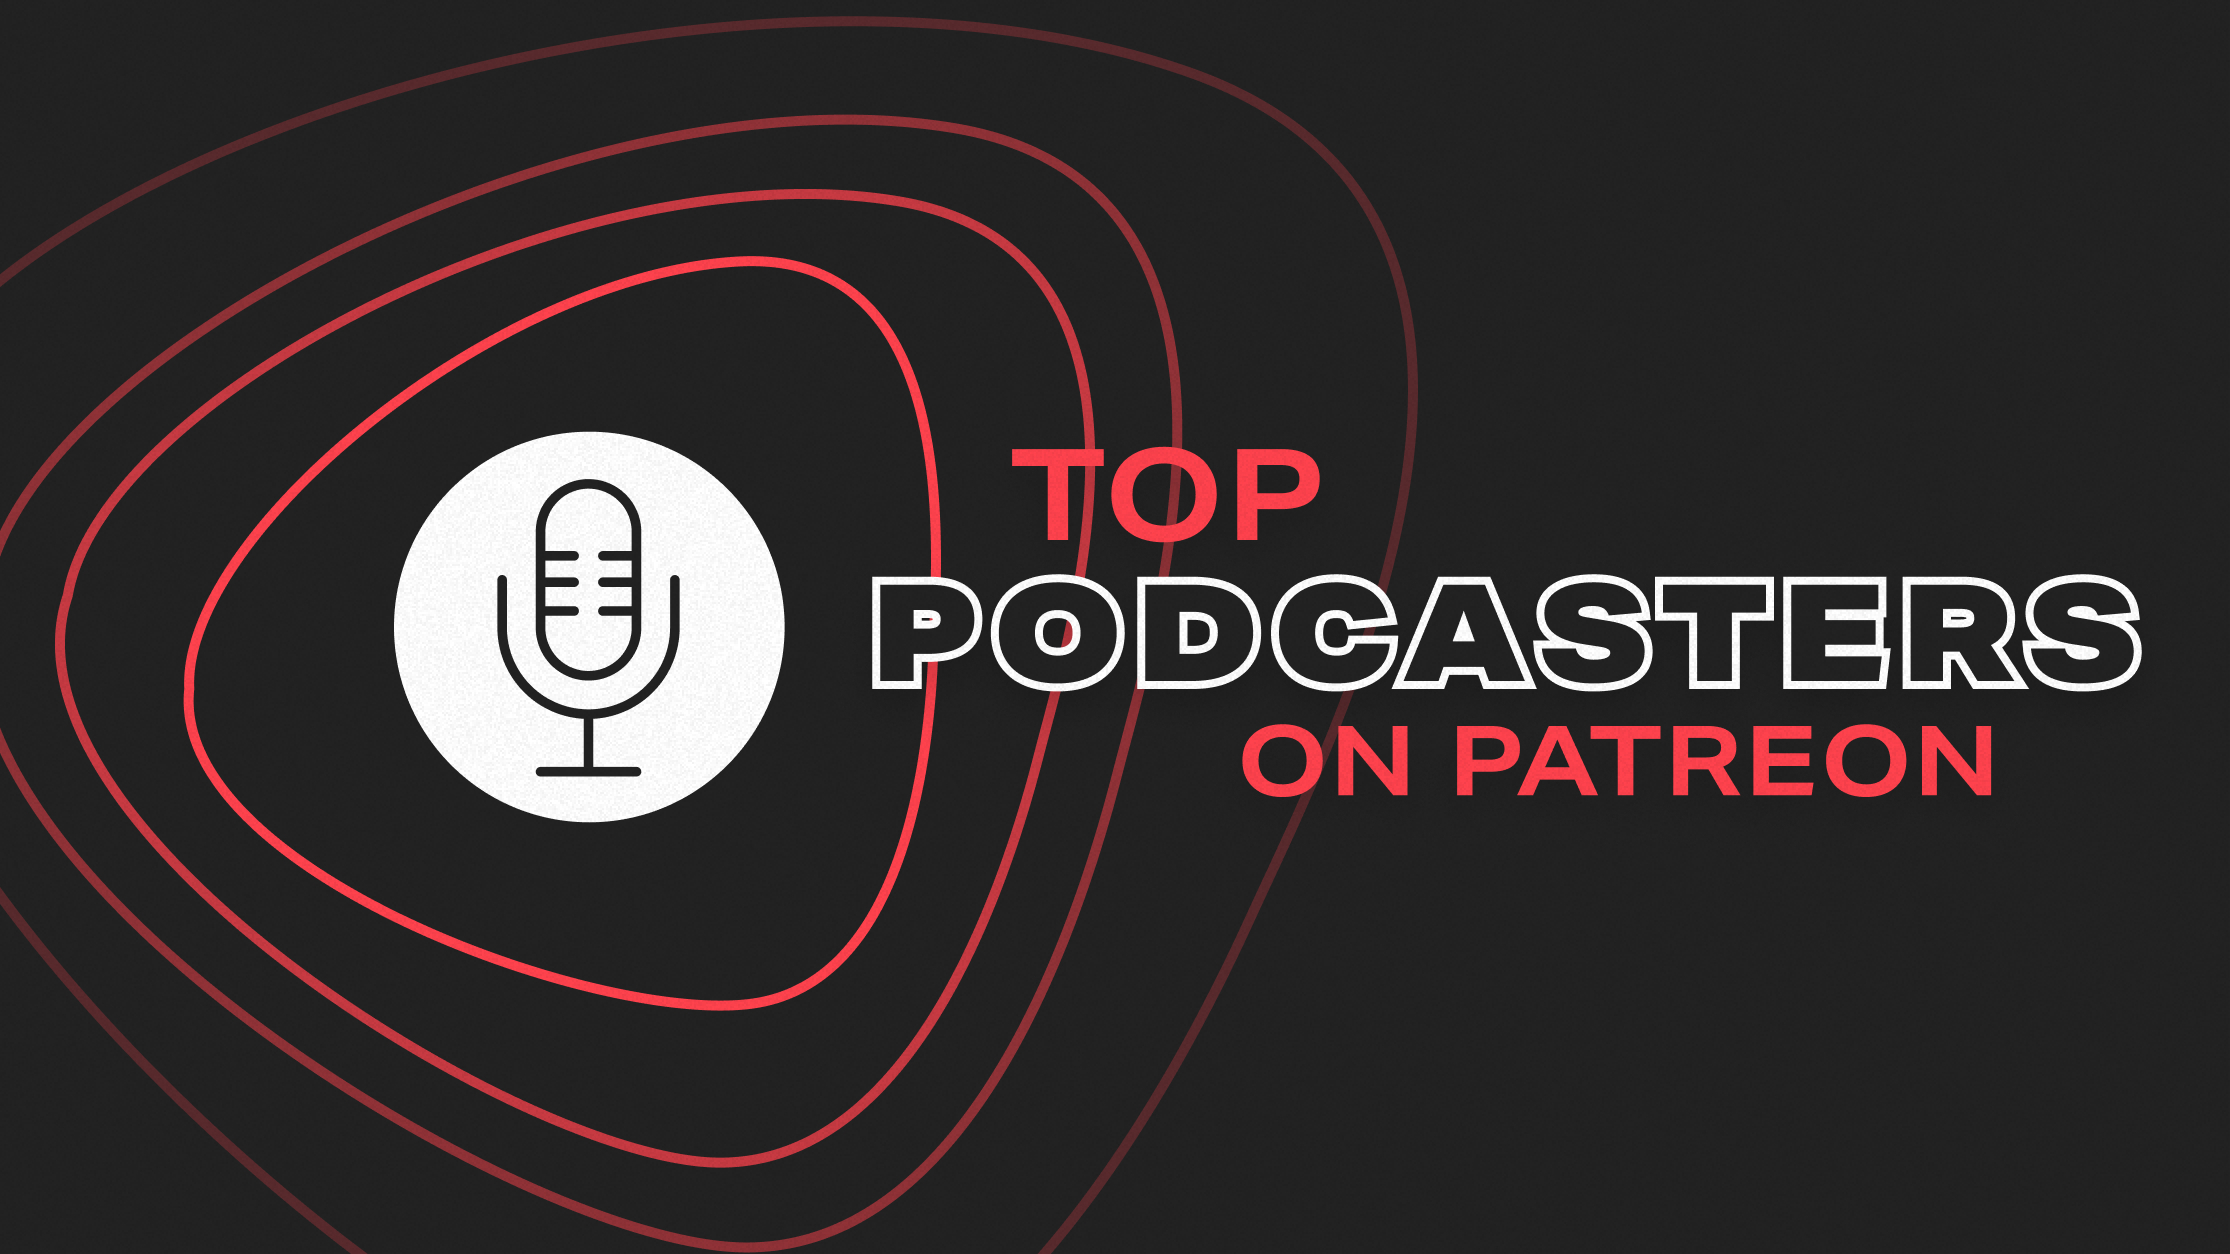 Top podcasters on Patreon